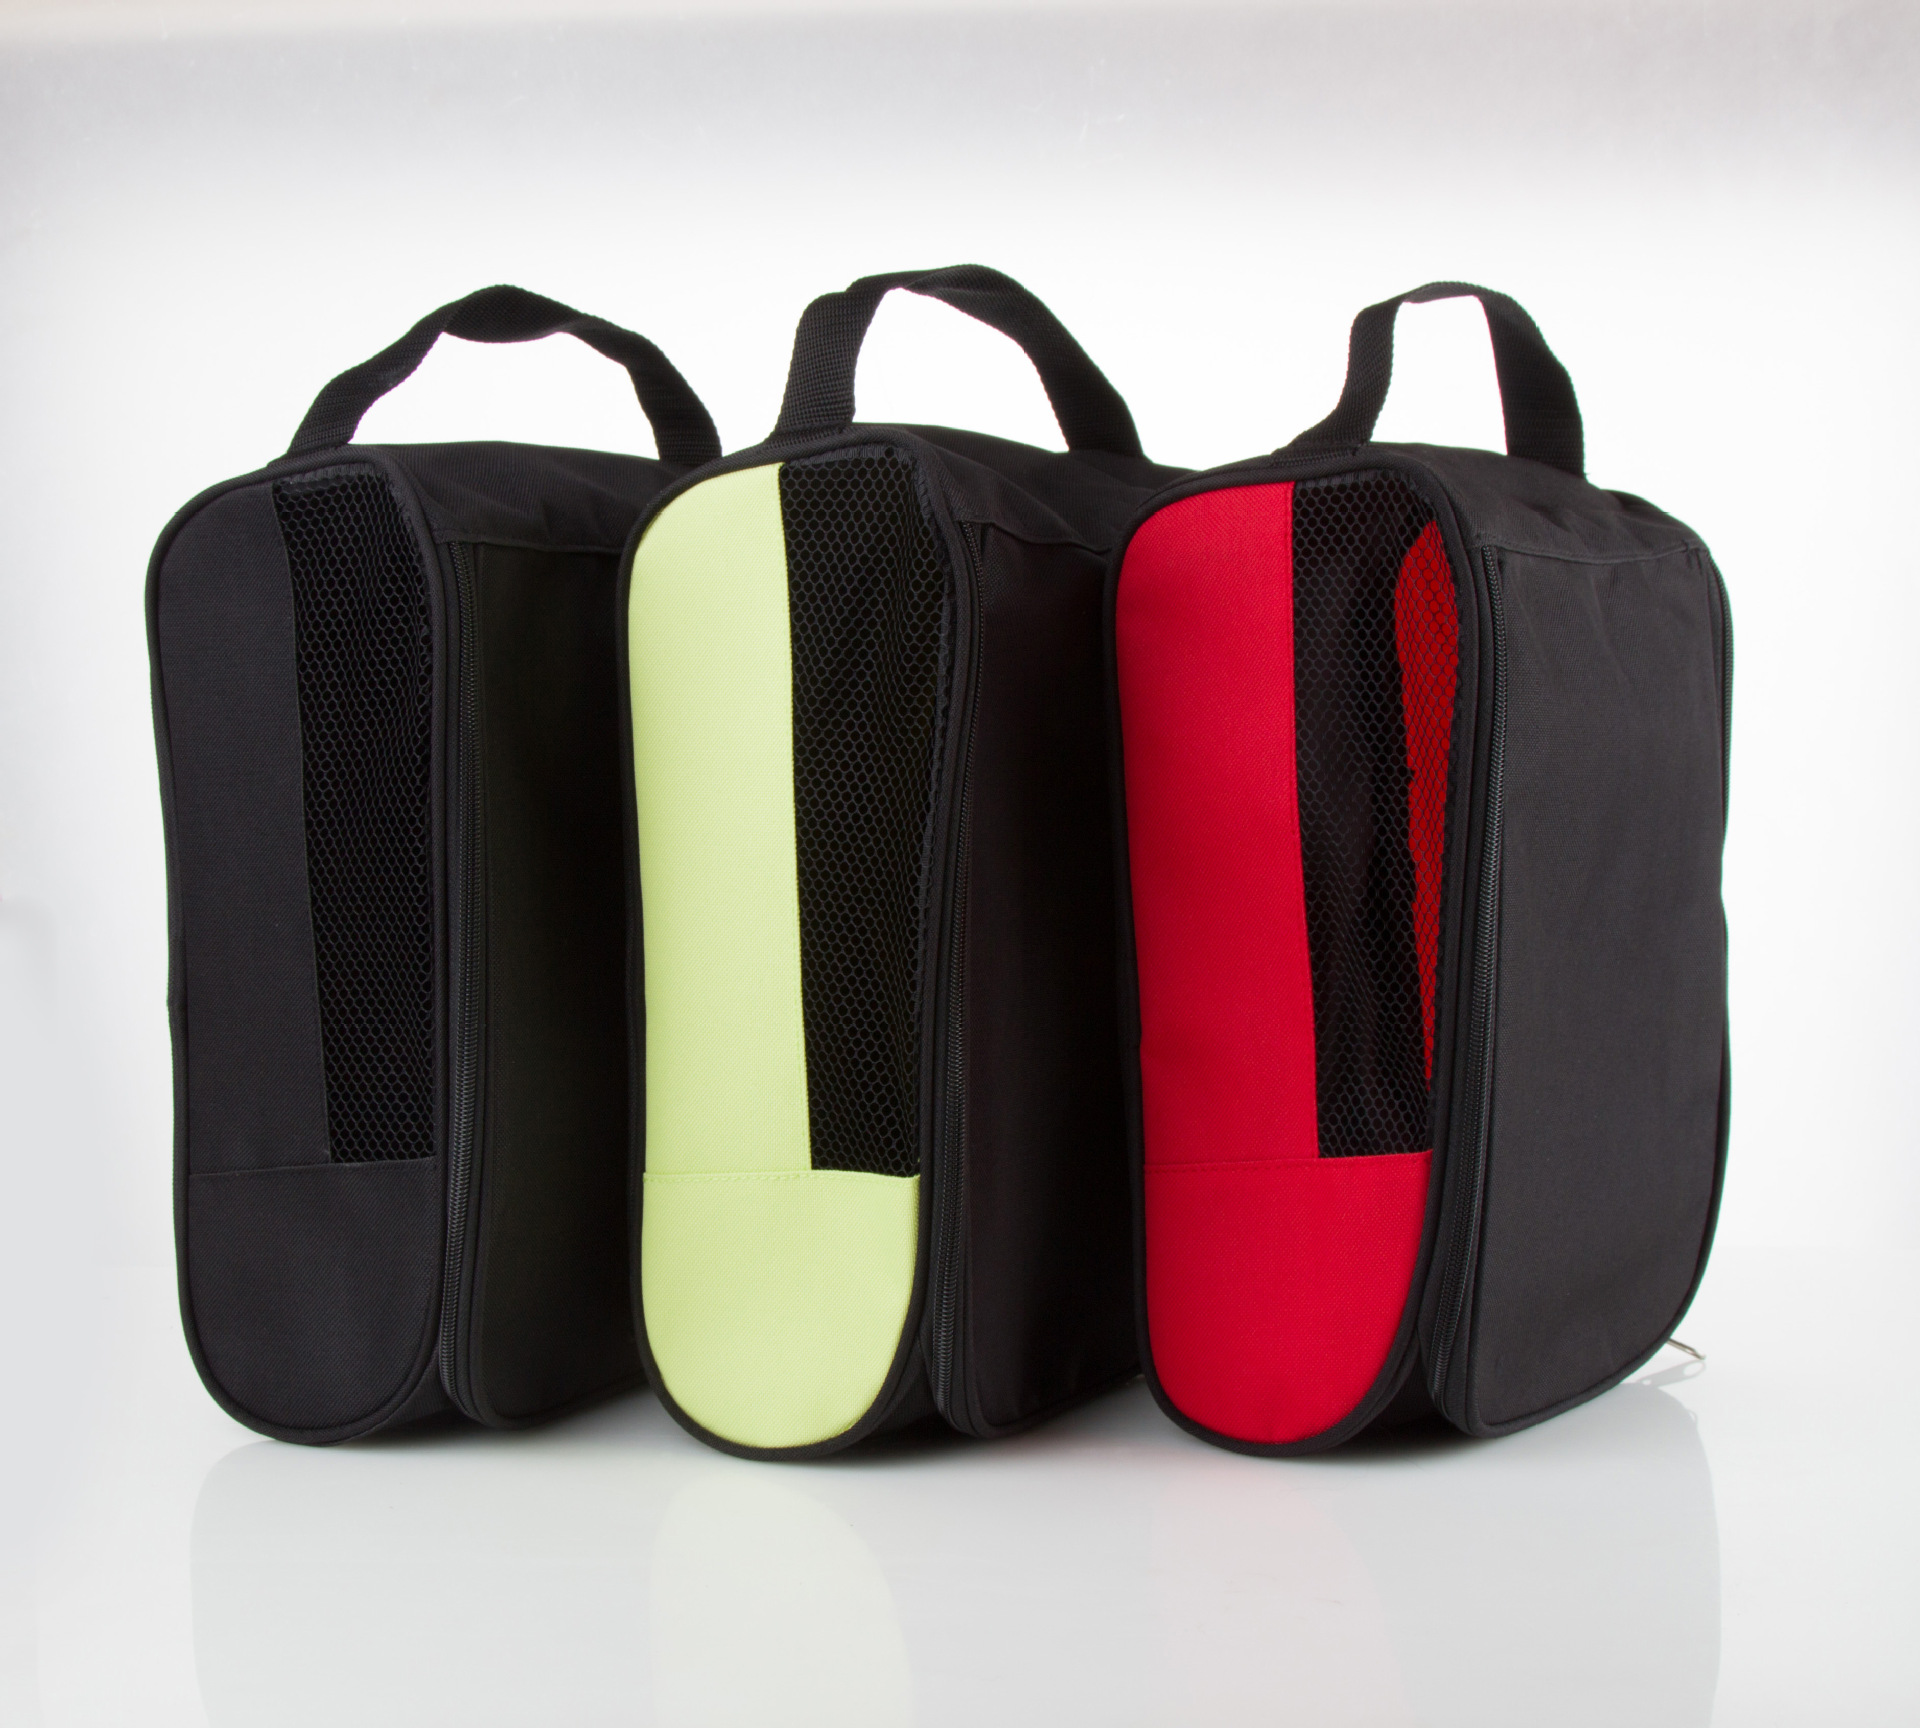 Golf Shoes Bag Zipped Sports Bag Shoe Case Golf Shoe Bag - Zippered Shoe Carrier Bags